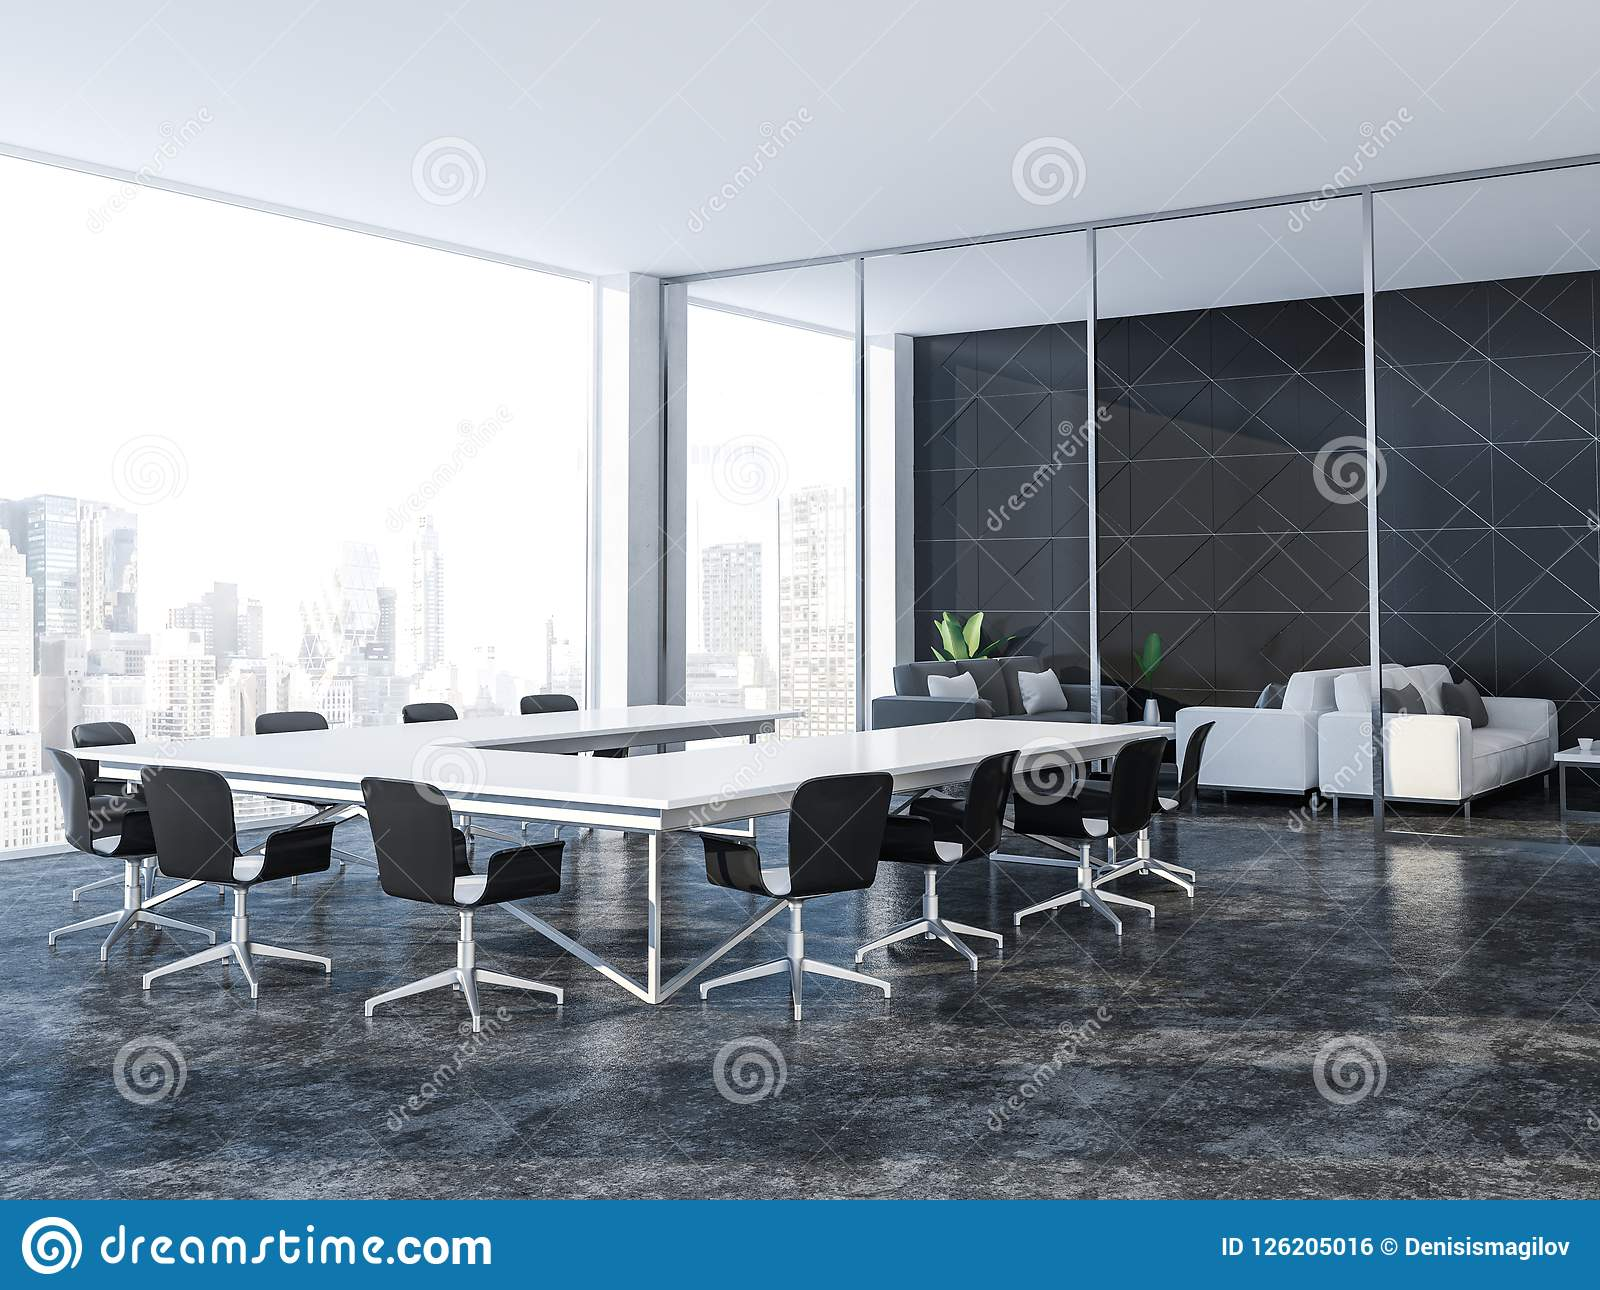 black triangle tile conference room and lounge stock illustration